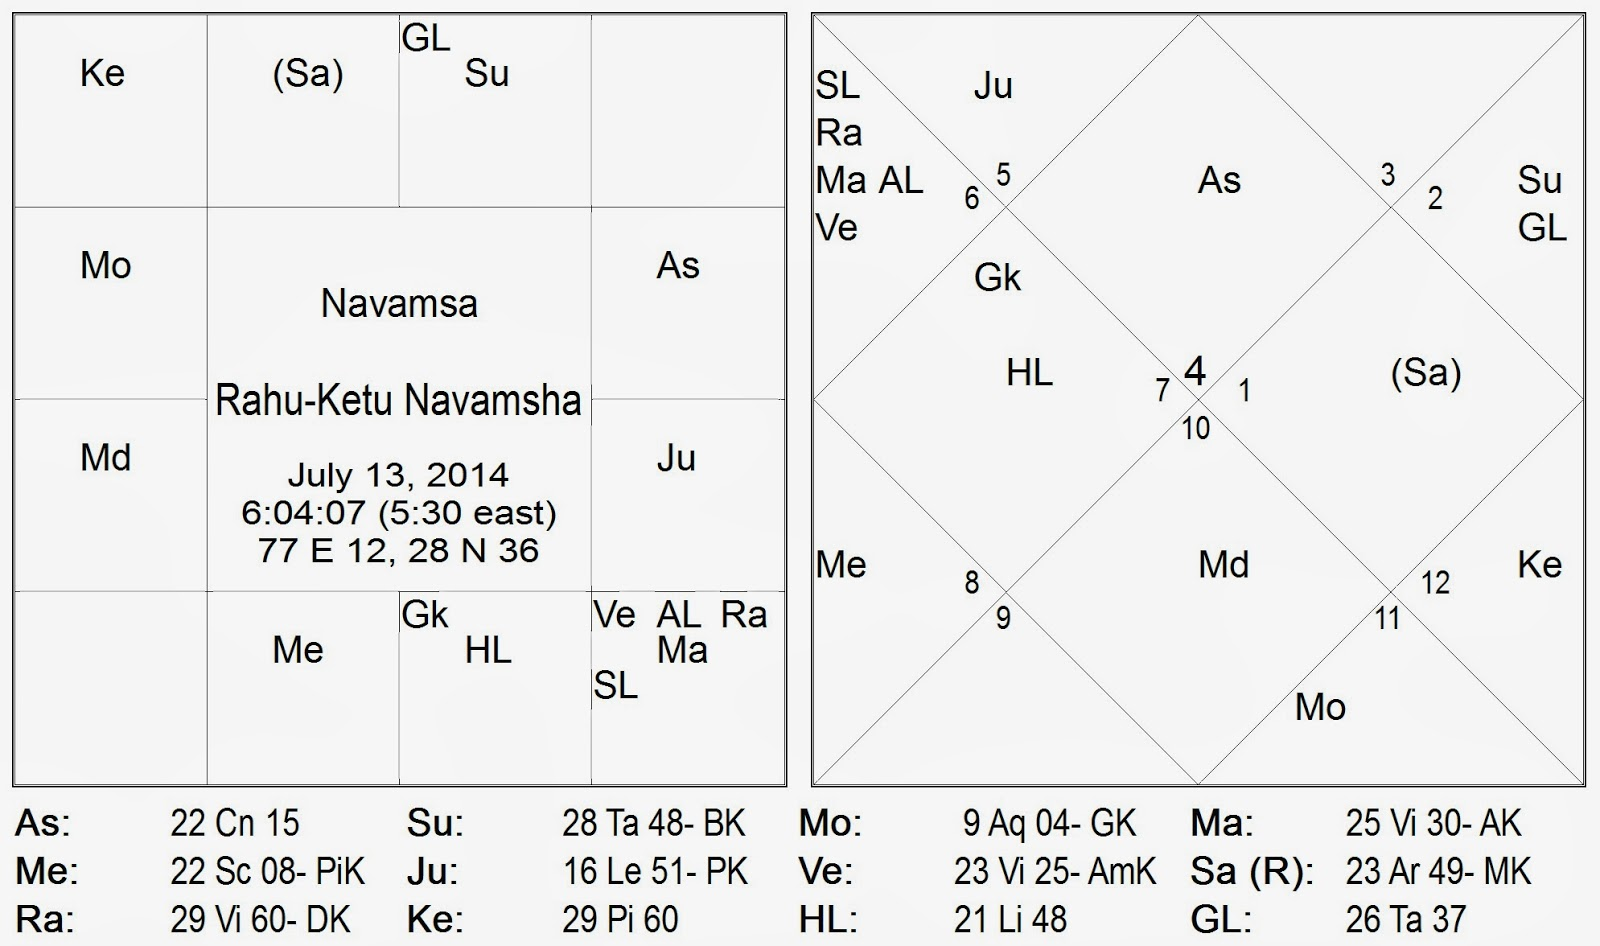 Significance of the movement gochara peyarchi of rahu and ketu to virgo kanya and pisces meena respectively